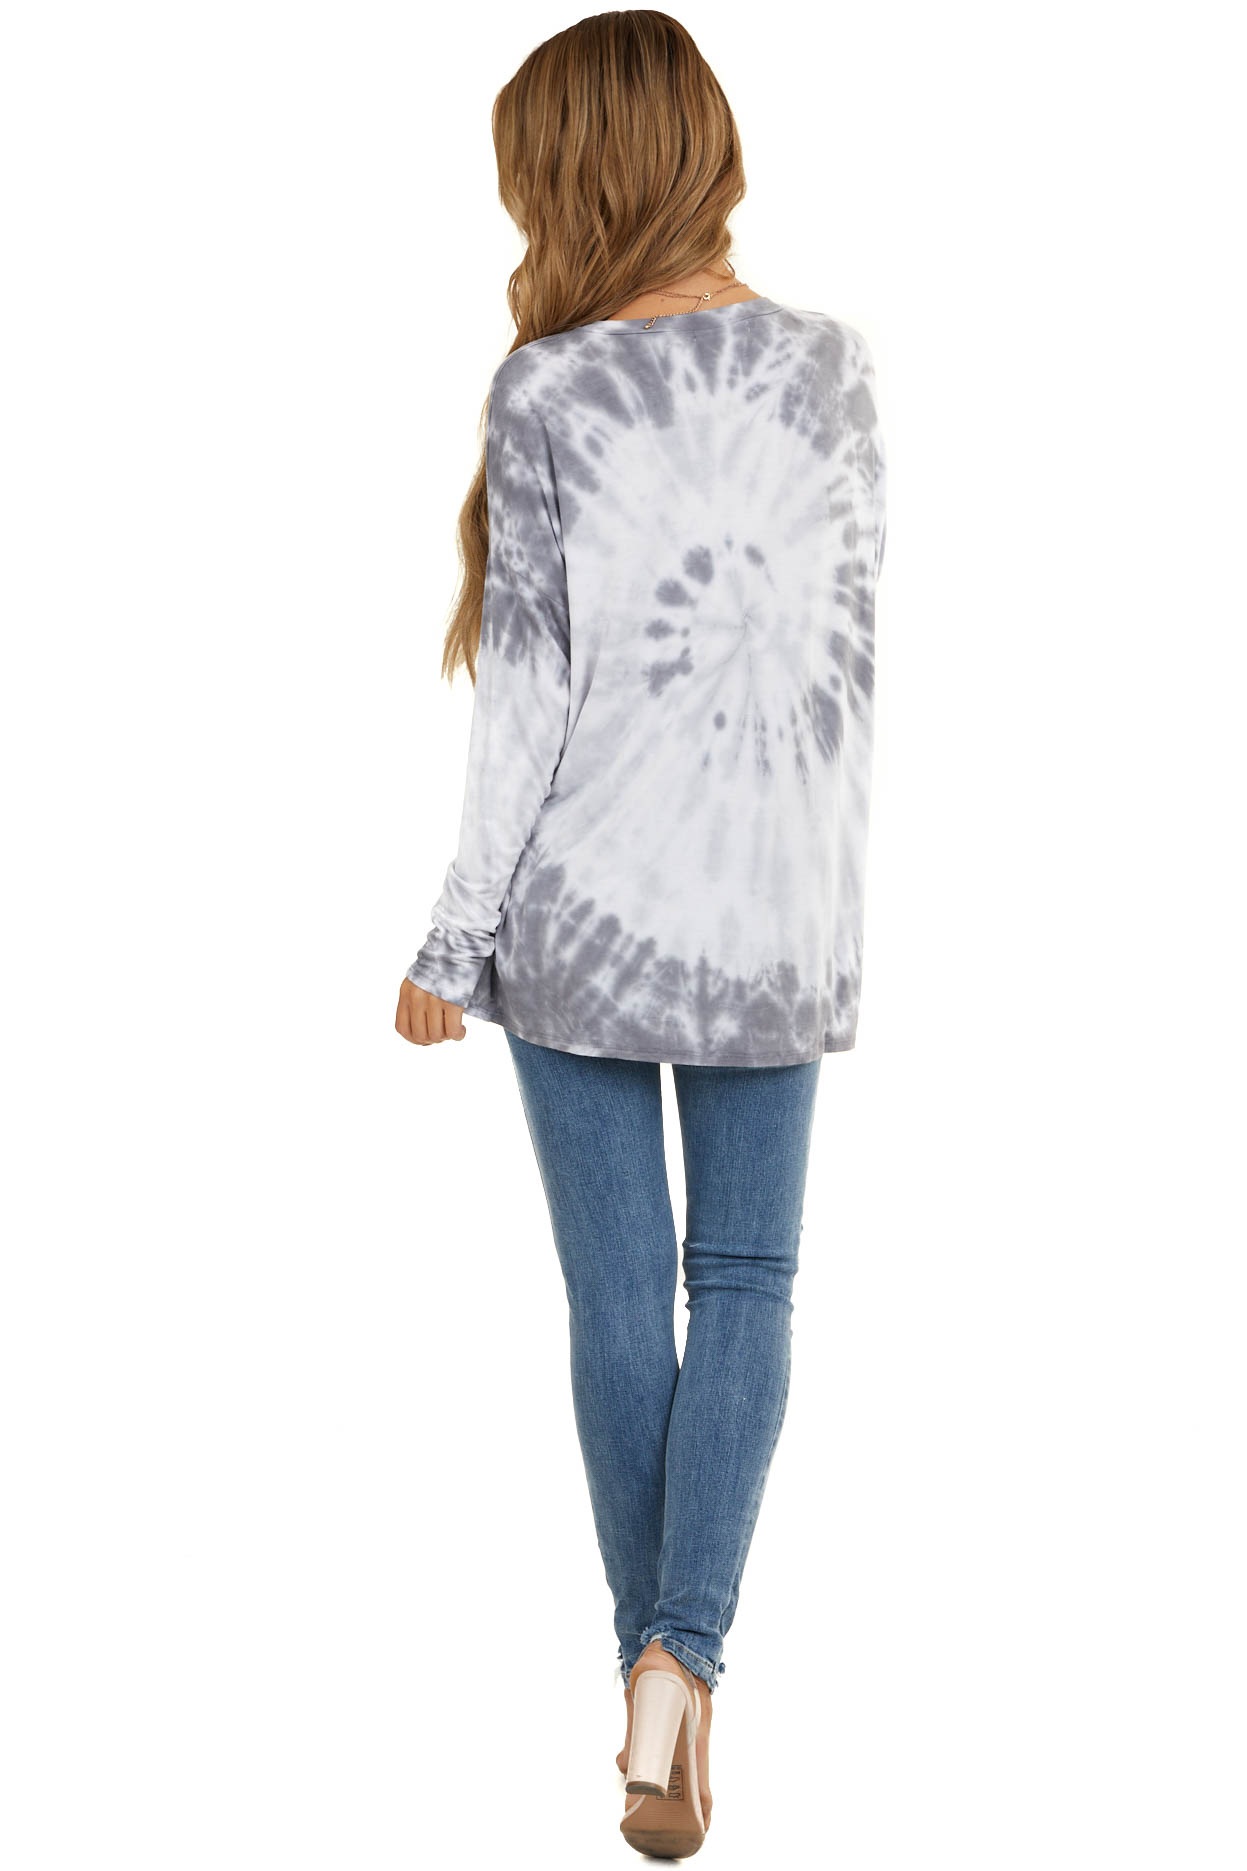 Charcoal Tie Dye Soft Knit Top with Long Sleeves